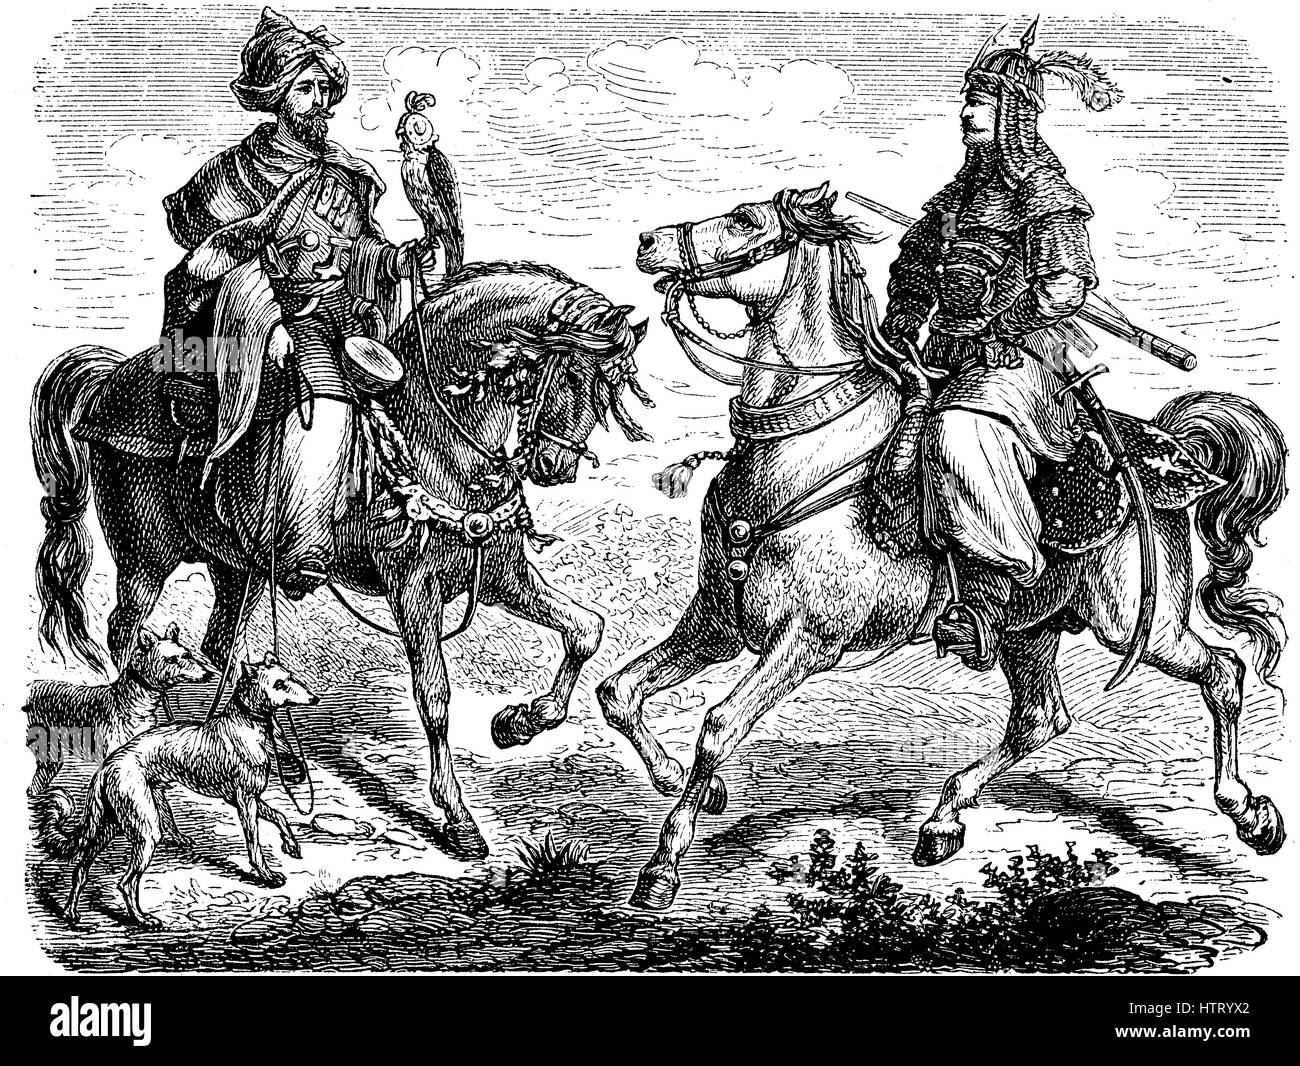 Tribesmen, chiefs from the villages of Lebanon, ca 1880, reproduction of a woodcut from the year 1880, digital improved - Stock Image